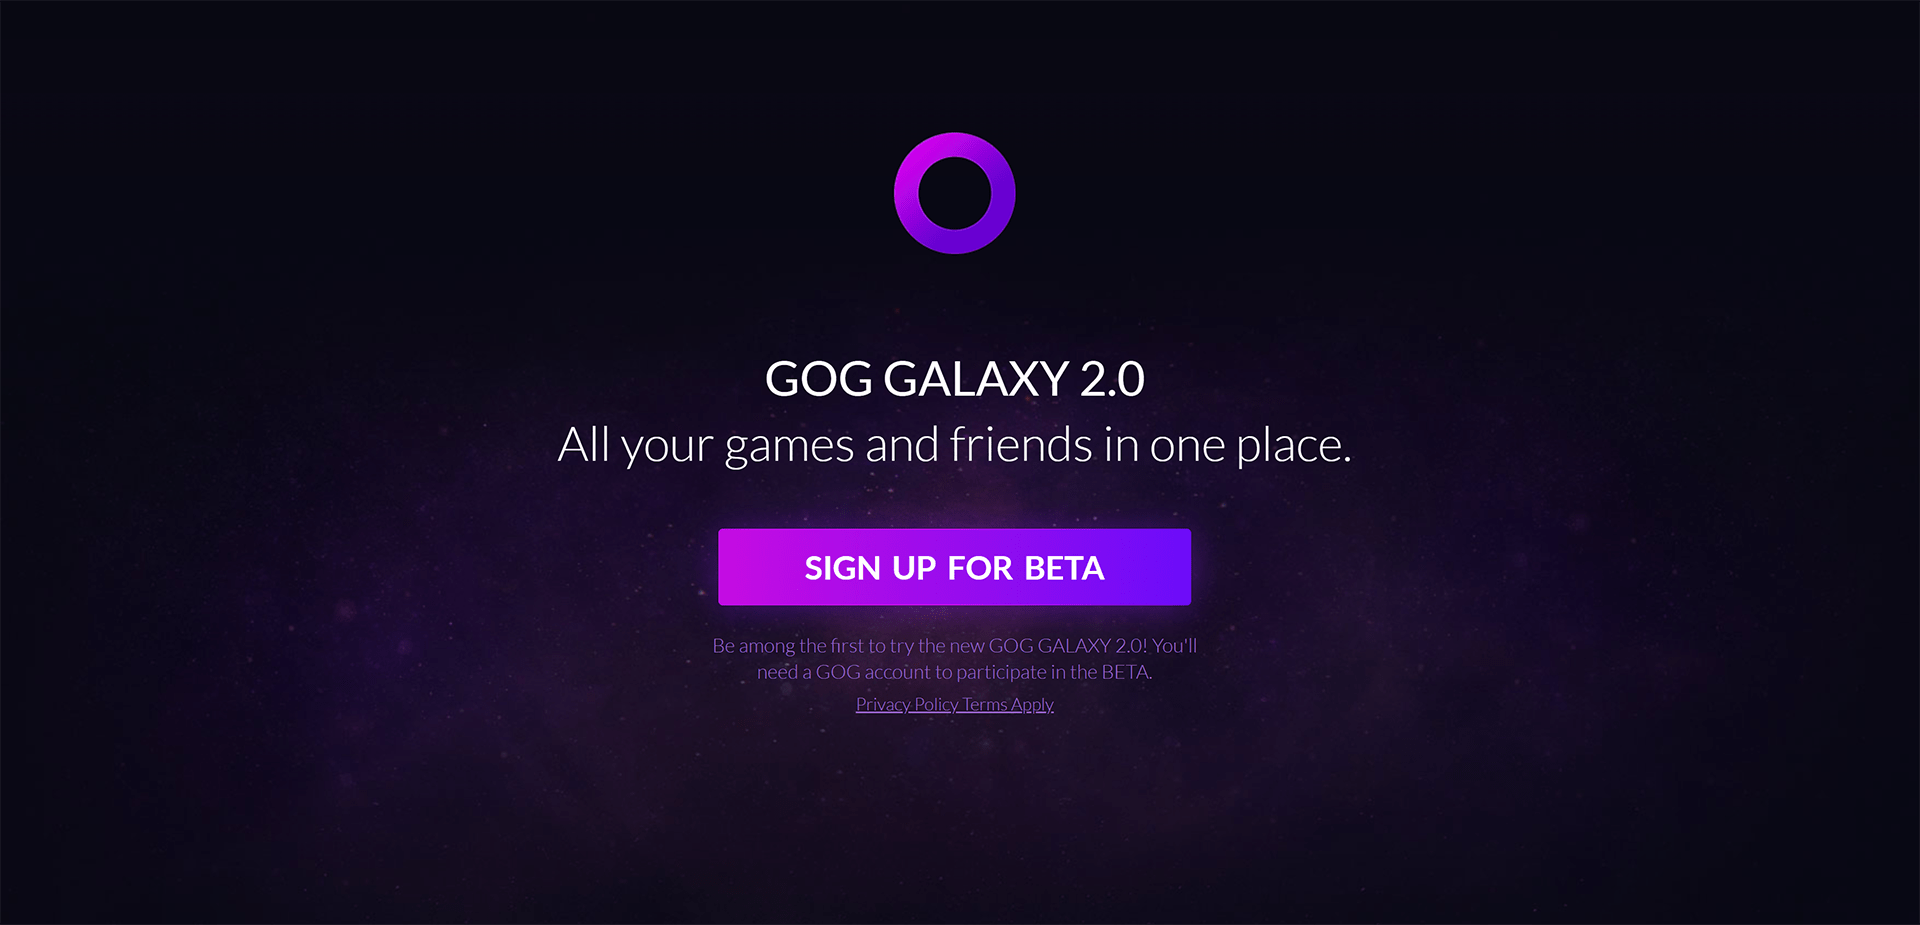 Newest Wave Of Beta Invites Out From GOG For GOG Galaxy 2.0 Launcher From CD Projekt